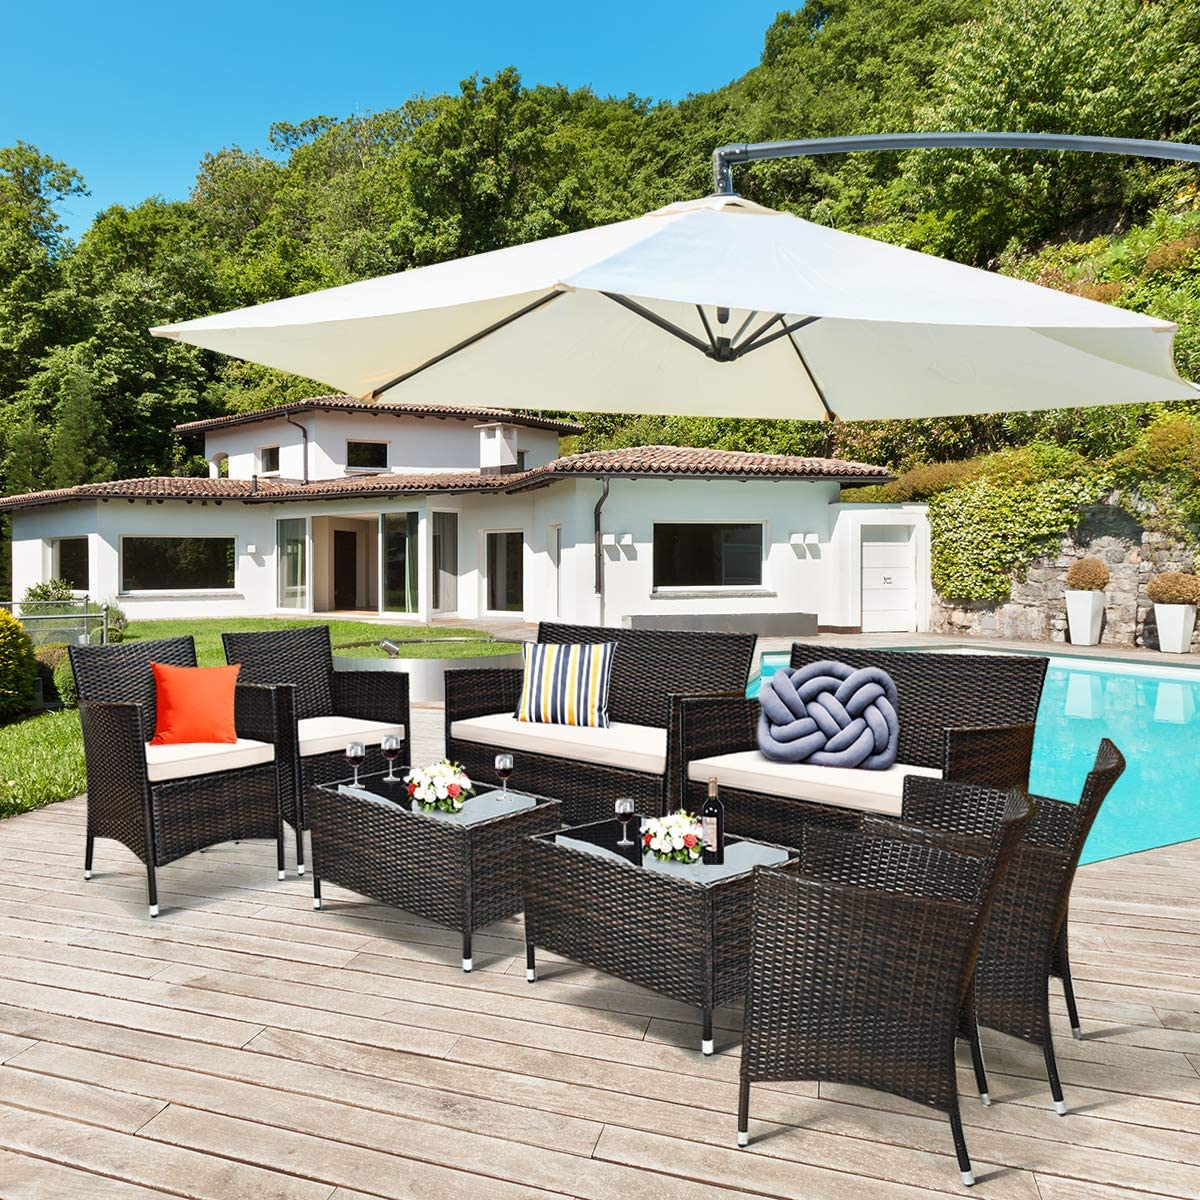 Tangkula 8 PCS Patio Rattan Conversation Set, Outdoor Wicker Furniture Set with Tempered Glass Coffee Table &Thick Cushion, Rattan Chair Wicker Set for Garden, Lawn, Poolside and Backyard (2, Brown)